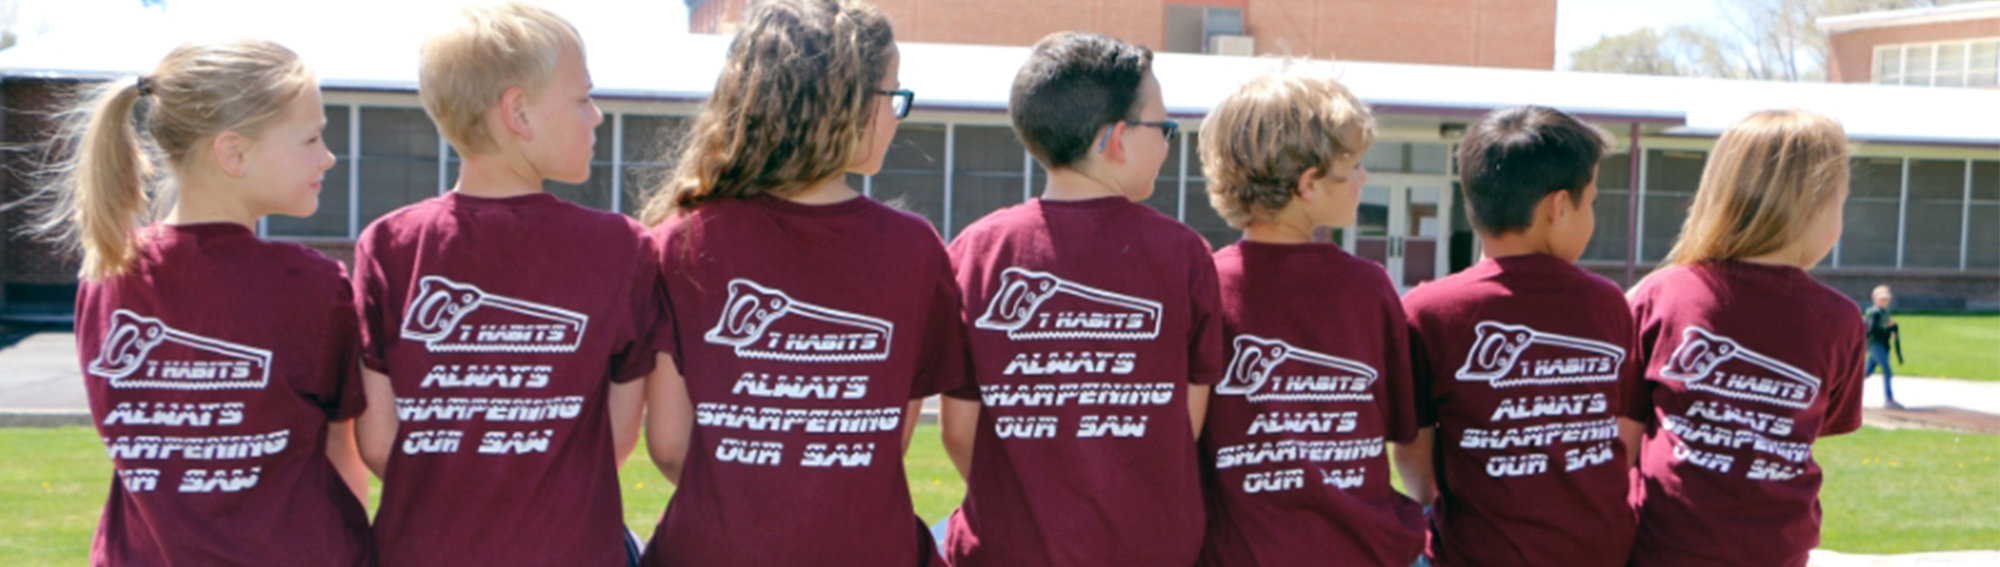 Group of happy Grammar students sitting outside in line wearing t-shirts with 7 Habits - Always Sharpening Our Saw